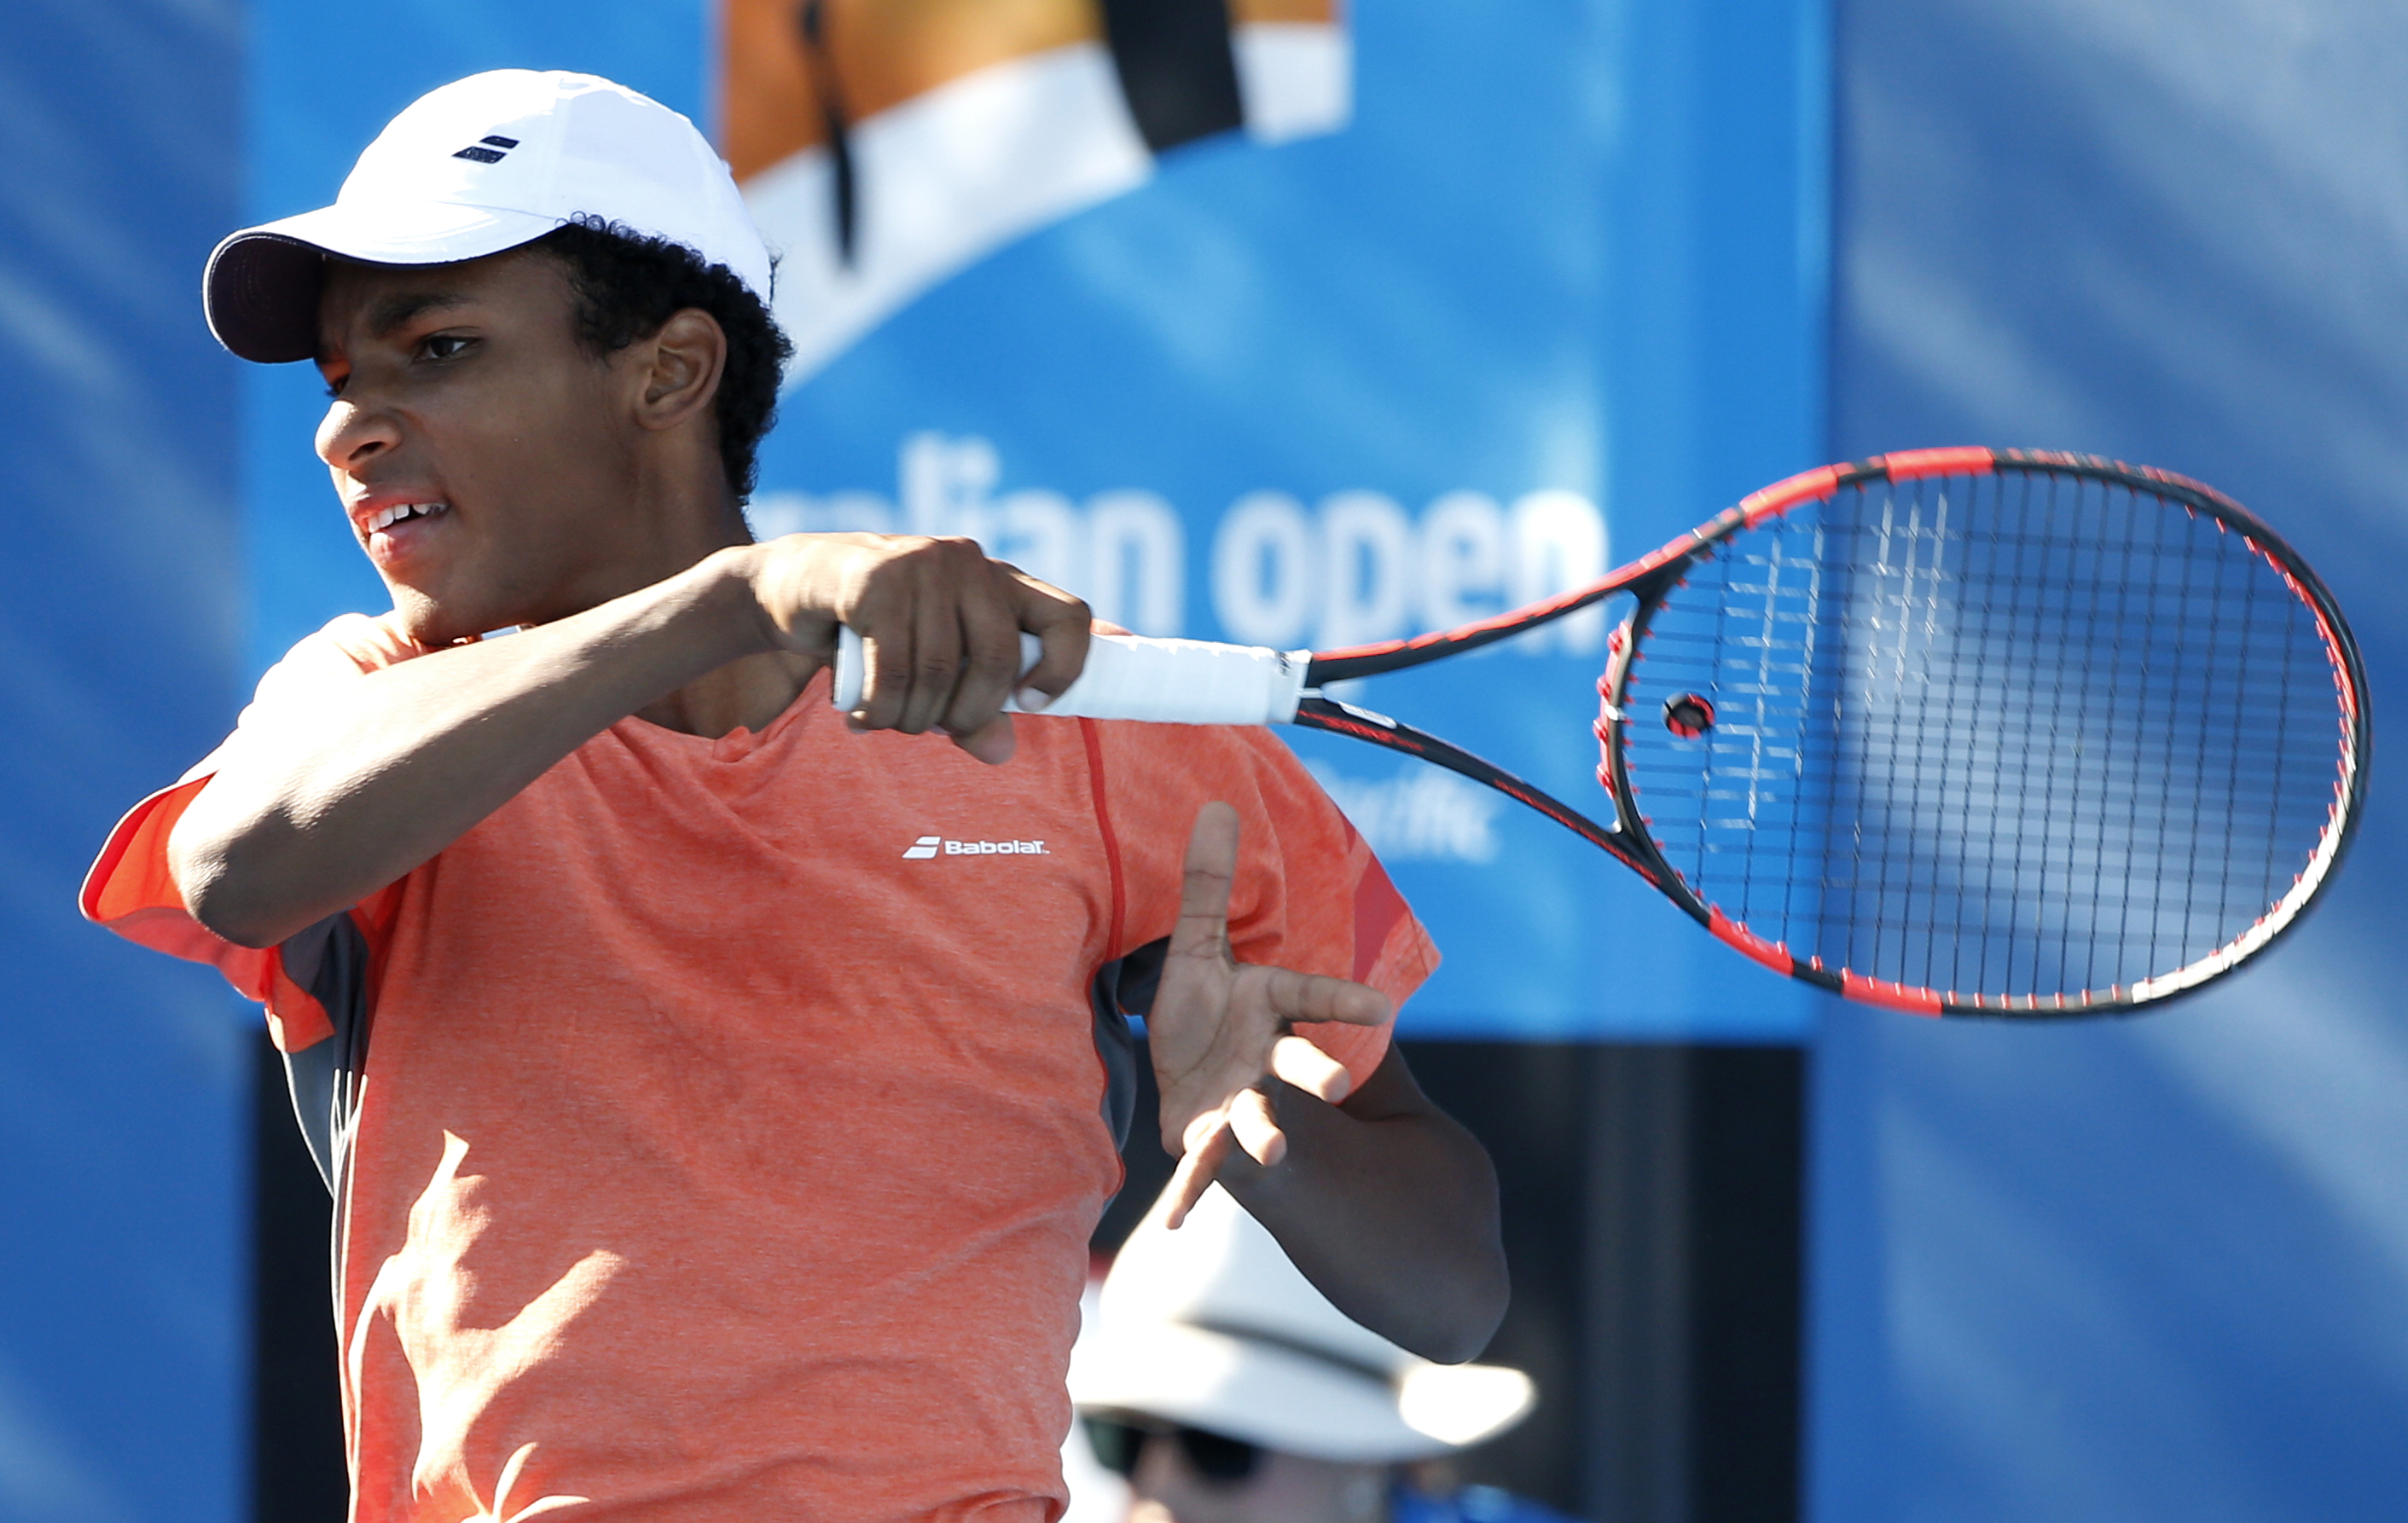 In this Sunday Jan. 24, 2016 photo Canada's junior tennis player Felix Auger Aliassime plays a forehand return during his singles match against Italy's Andres Gabriel Ciurletti at the Australian Open tennis championships in Melbourne. Growing up in Quebec